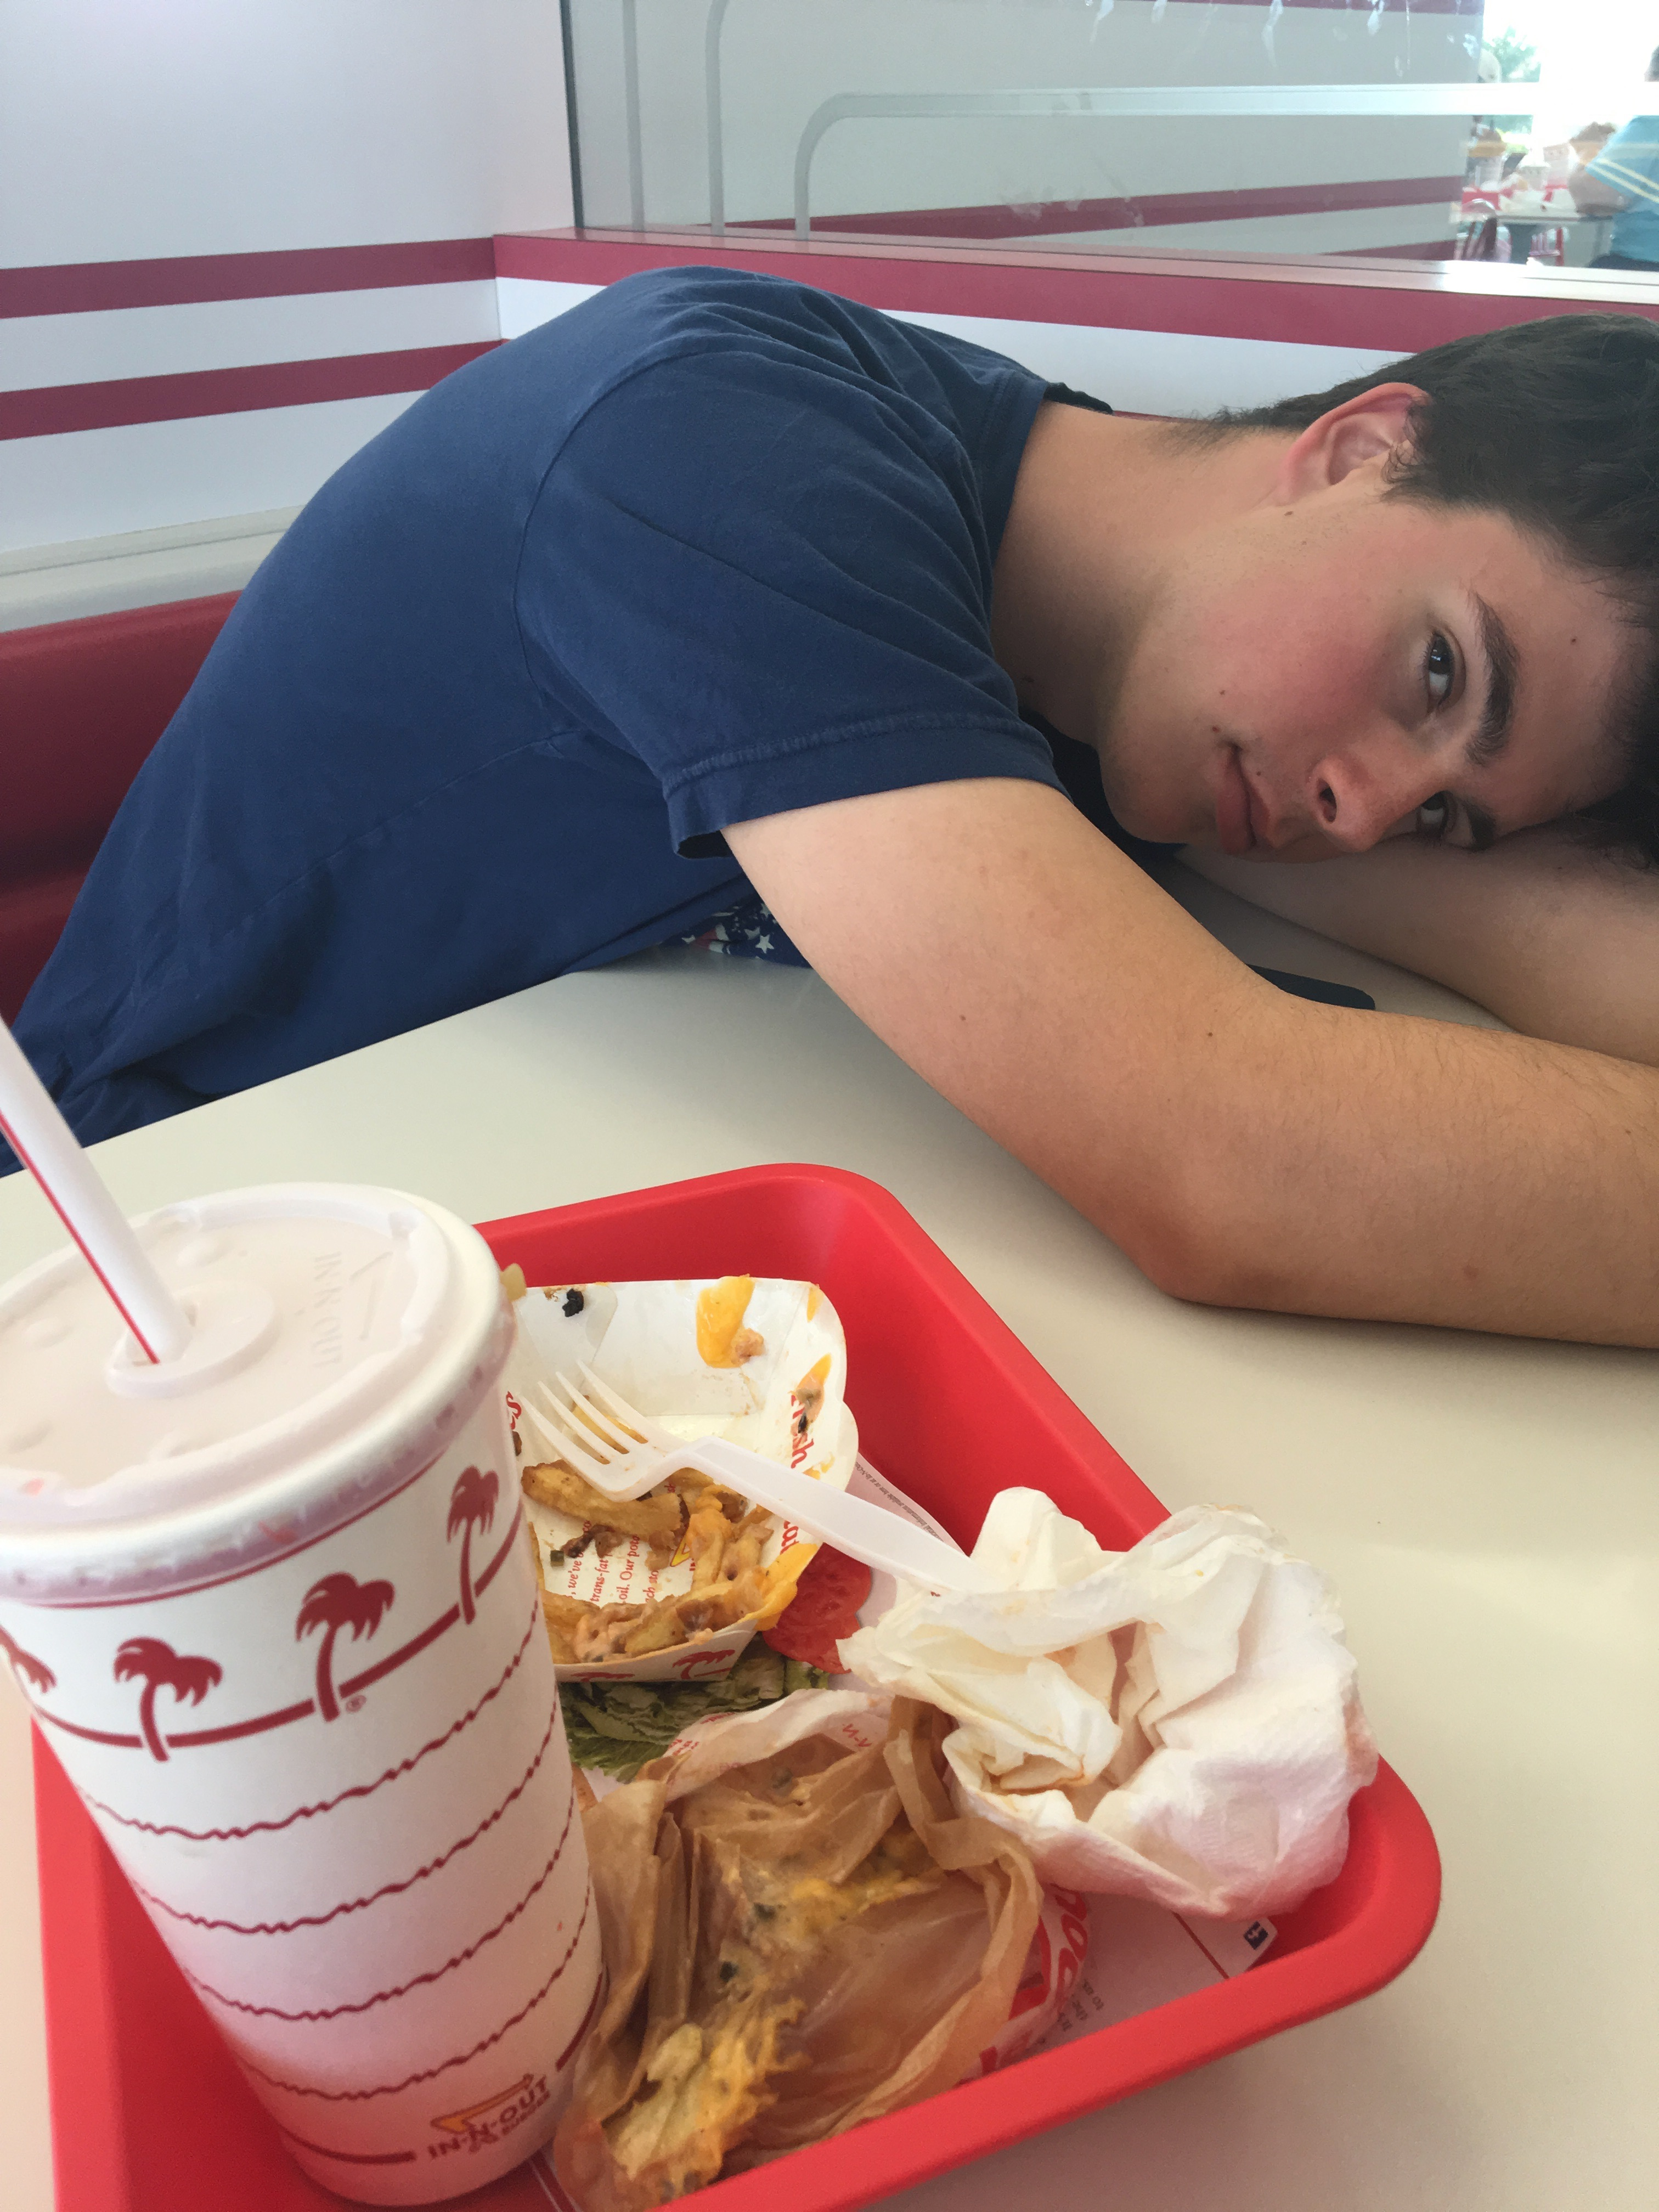 Samuel rests his head on the table next to the remains of his lunch from In-N-Out Burger.